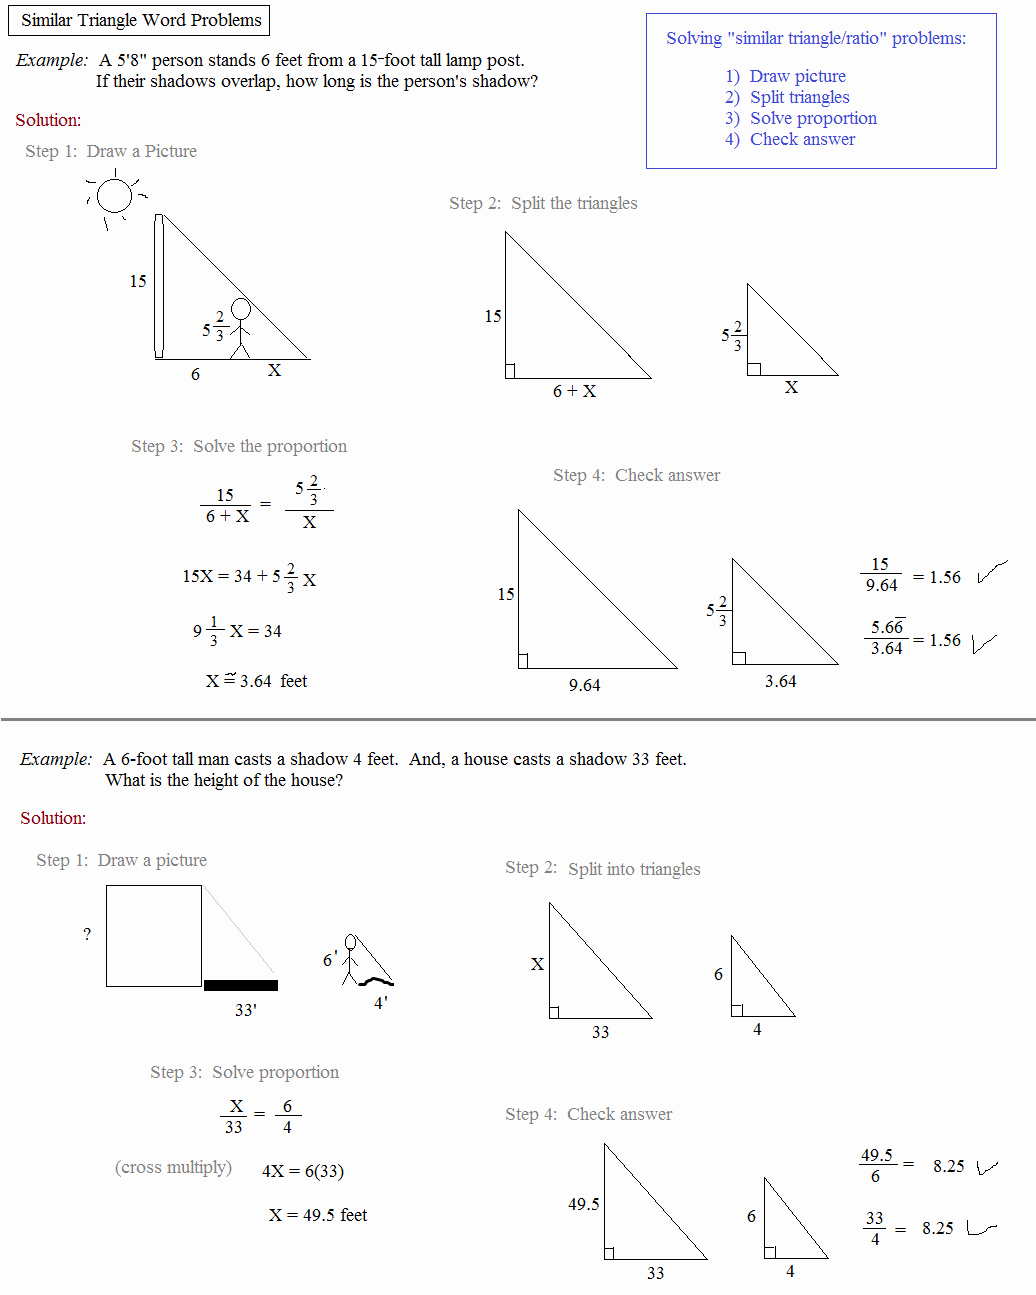 Right Triangle Word Problems Worksheet New Math Plane Similar Triangles & Ratios